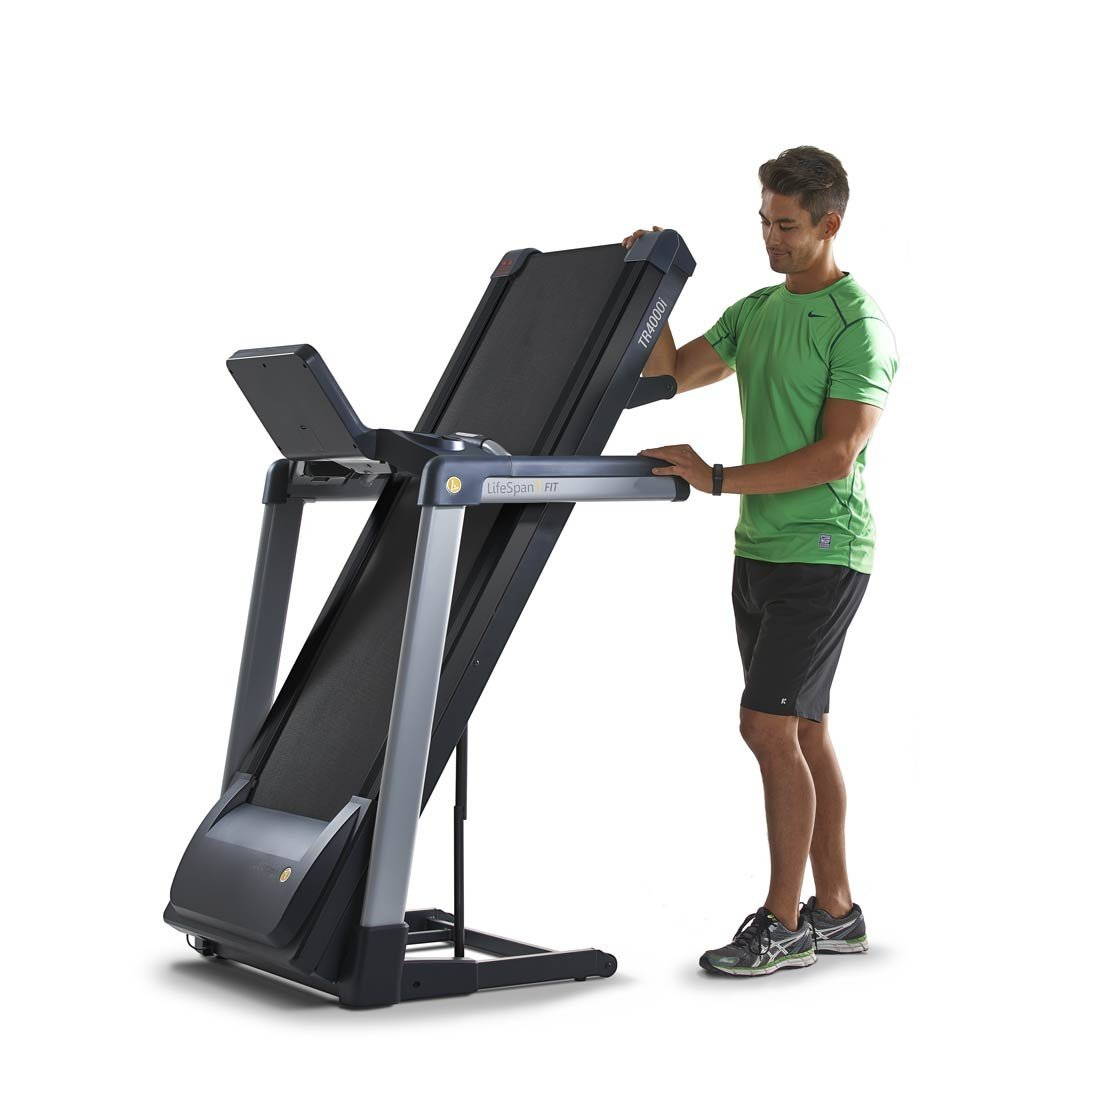 LifeSpan Fitness TR4000i Folding Treadmill Review